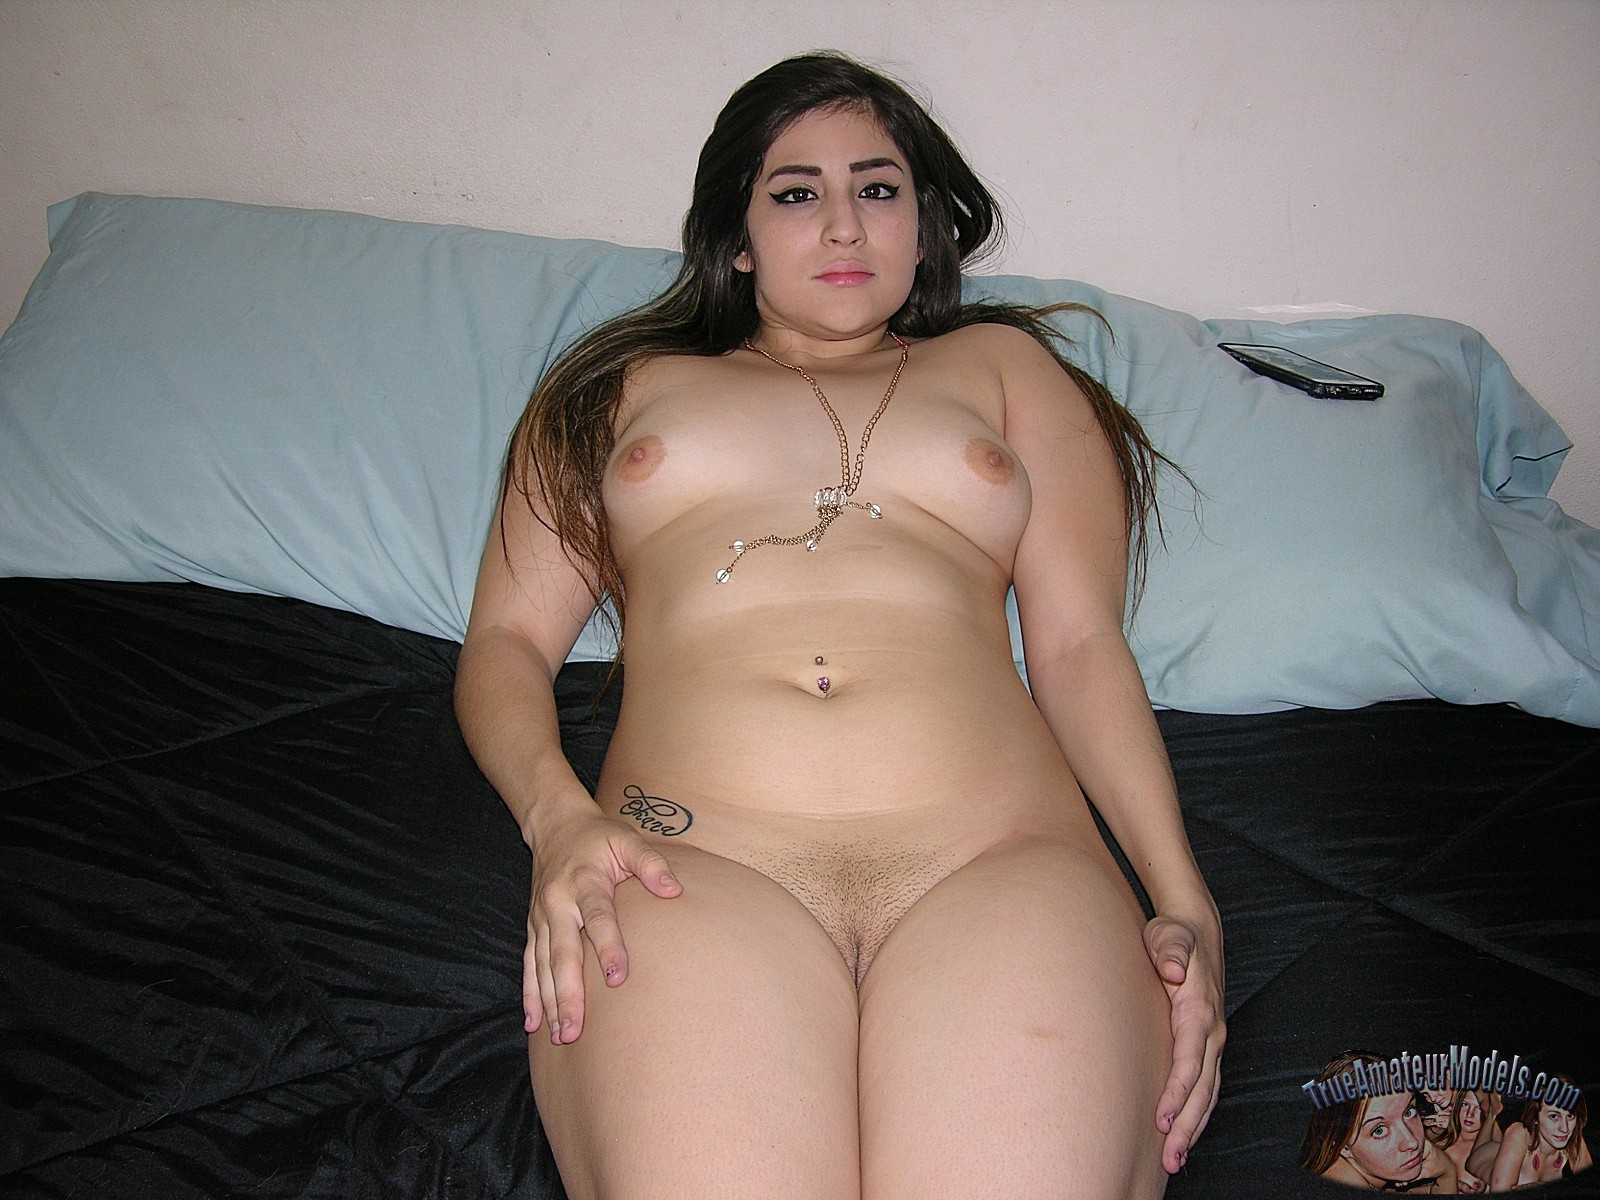 Amateur Homemade Porn Underground Modeling Shoot